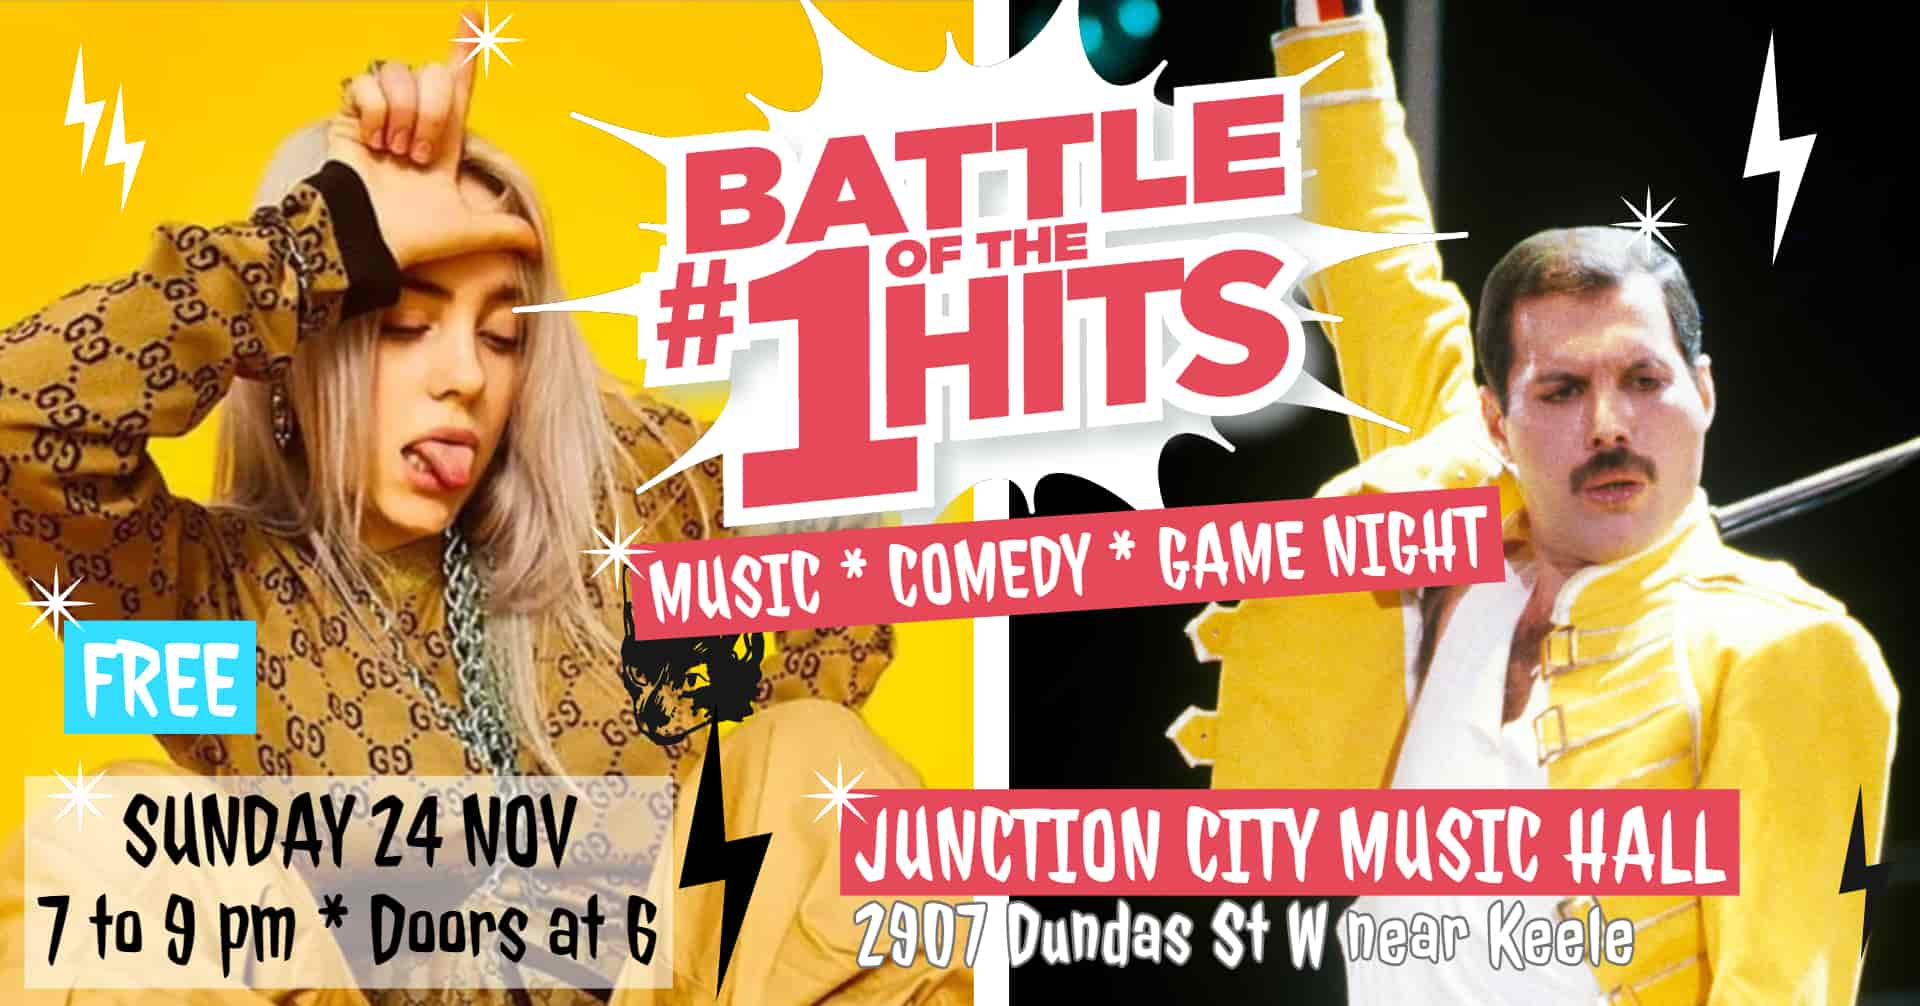 Battle of the #1 Hits at Junction City Music Hall: New Hit Songs Vs Old Hits